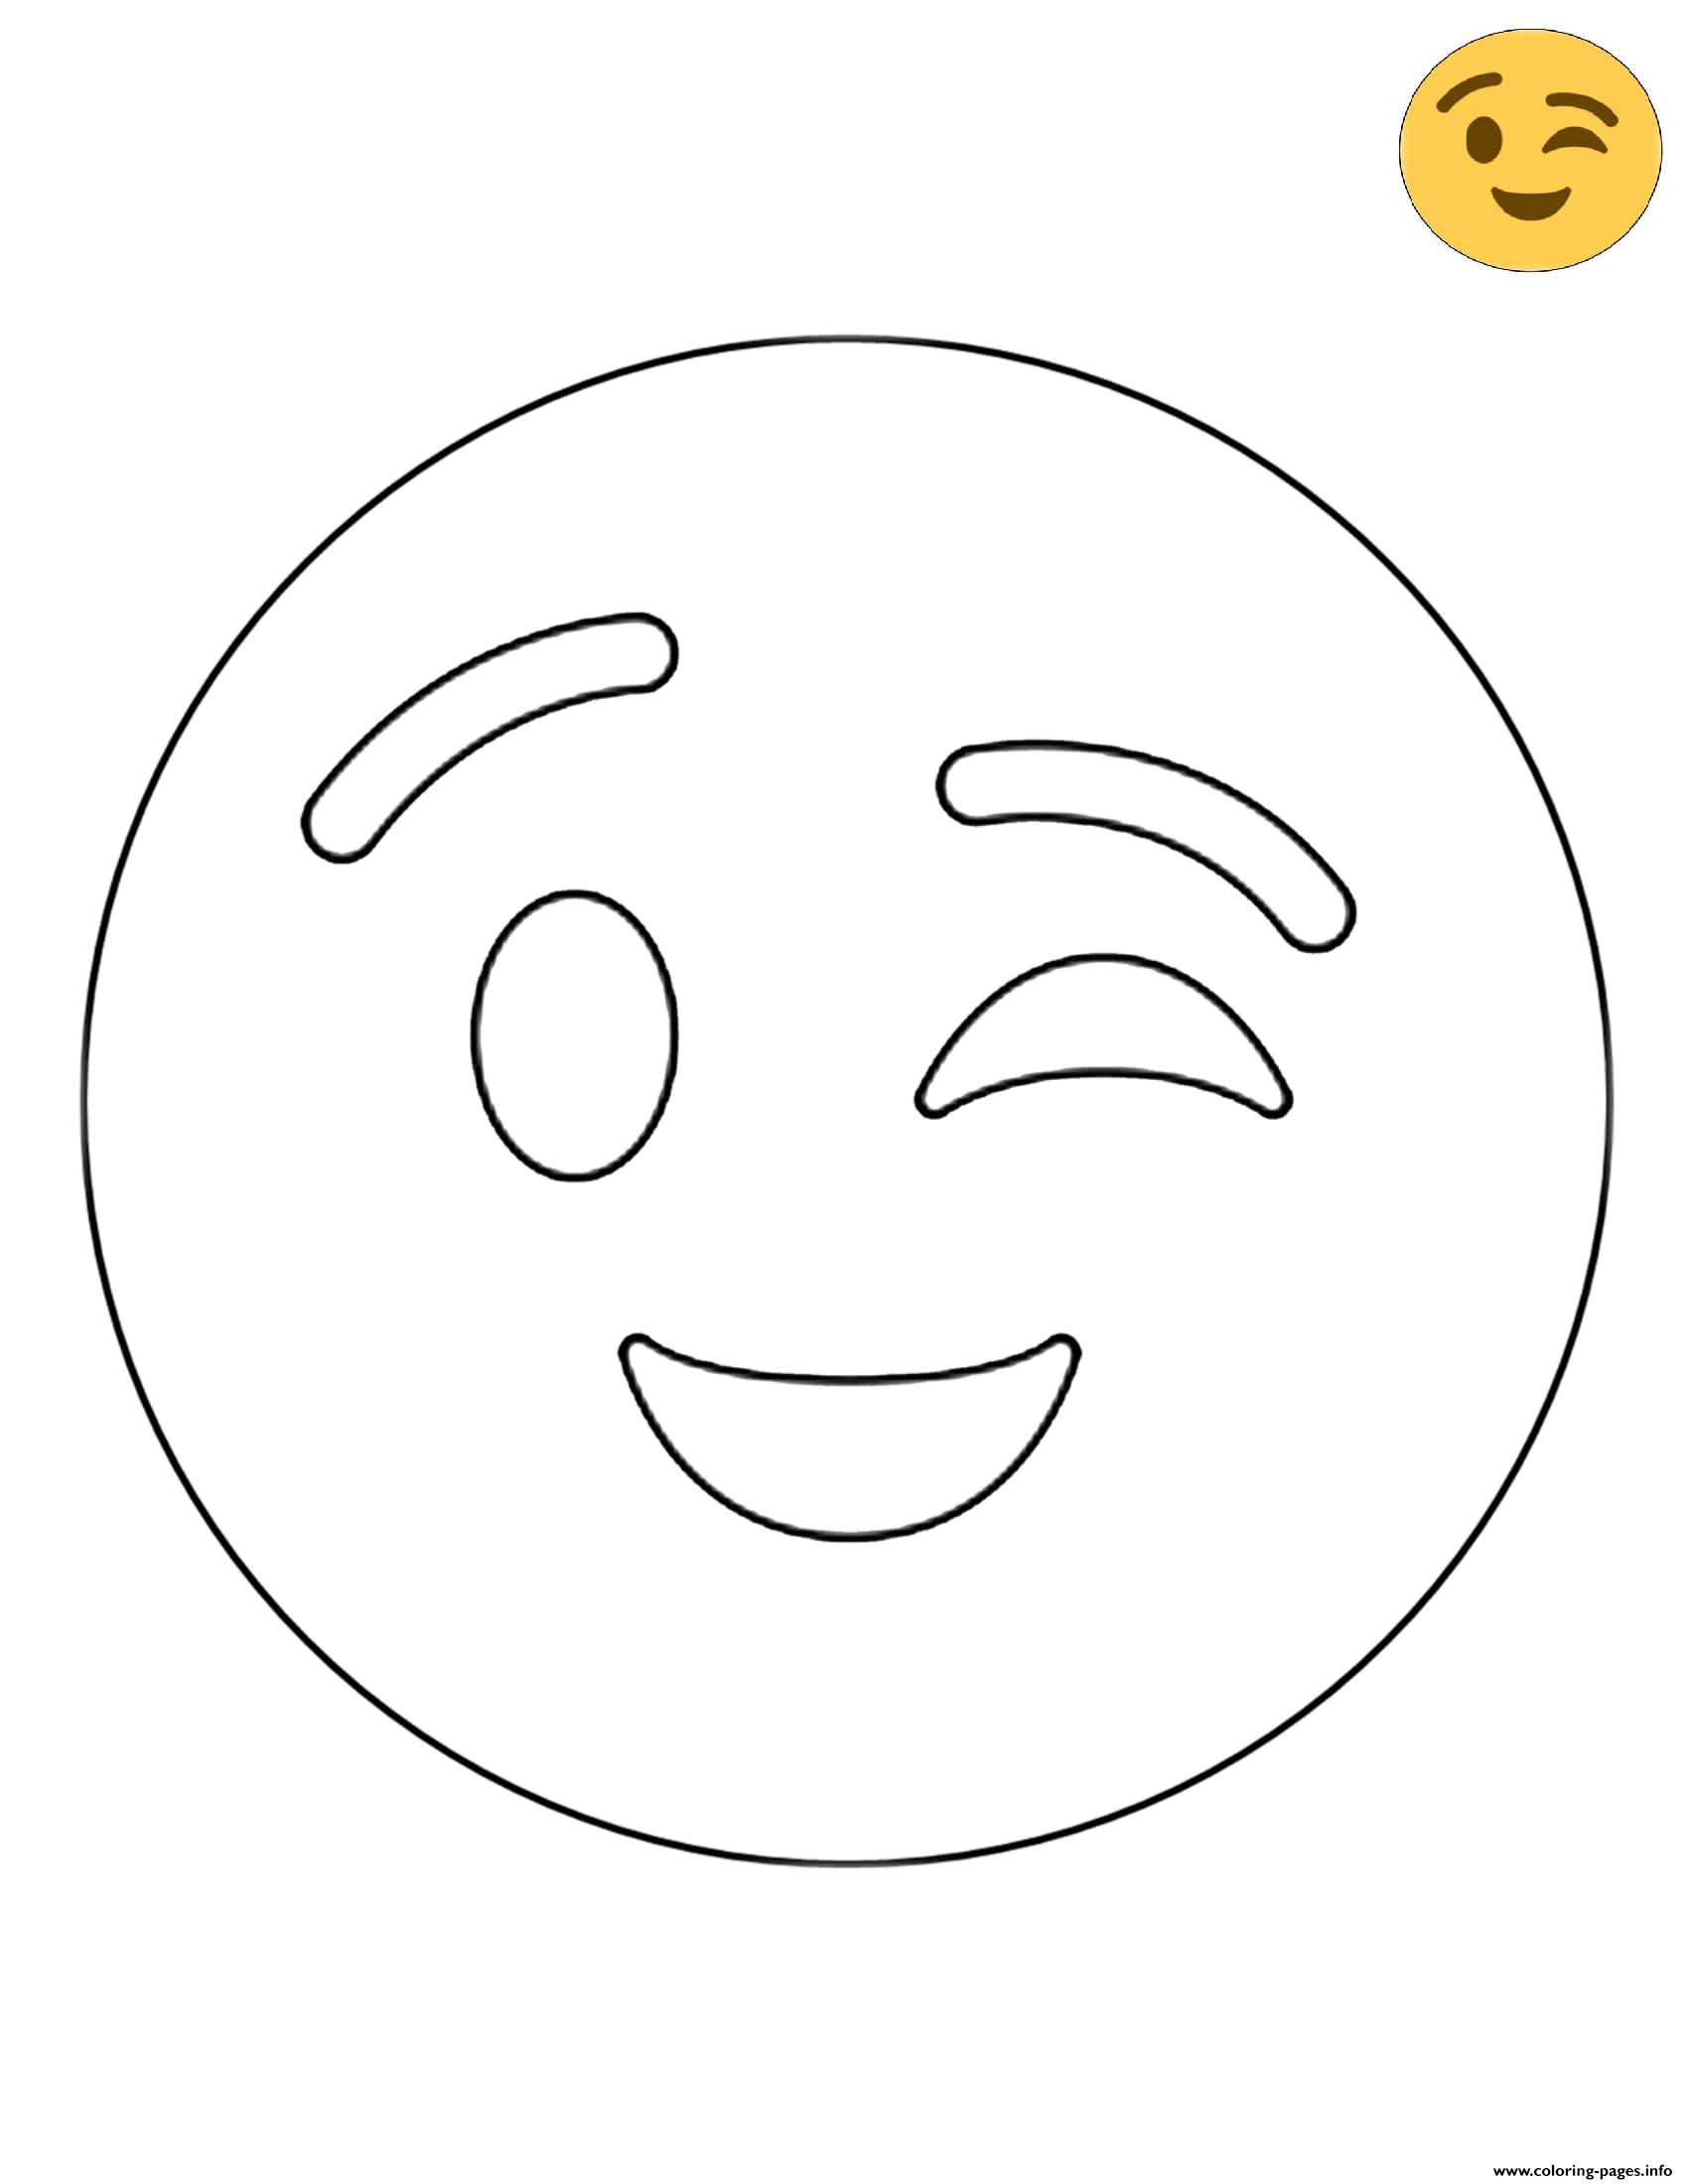 Twitter Wink Emoji coloring pages